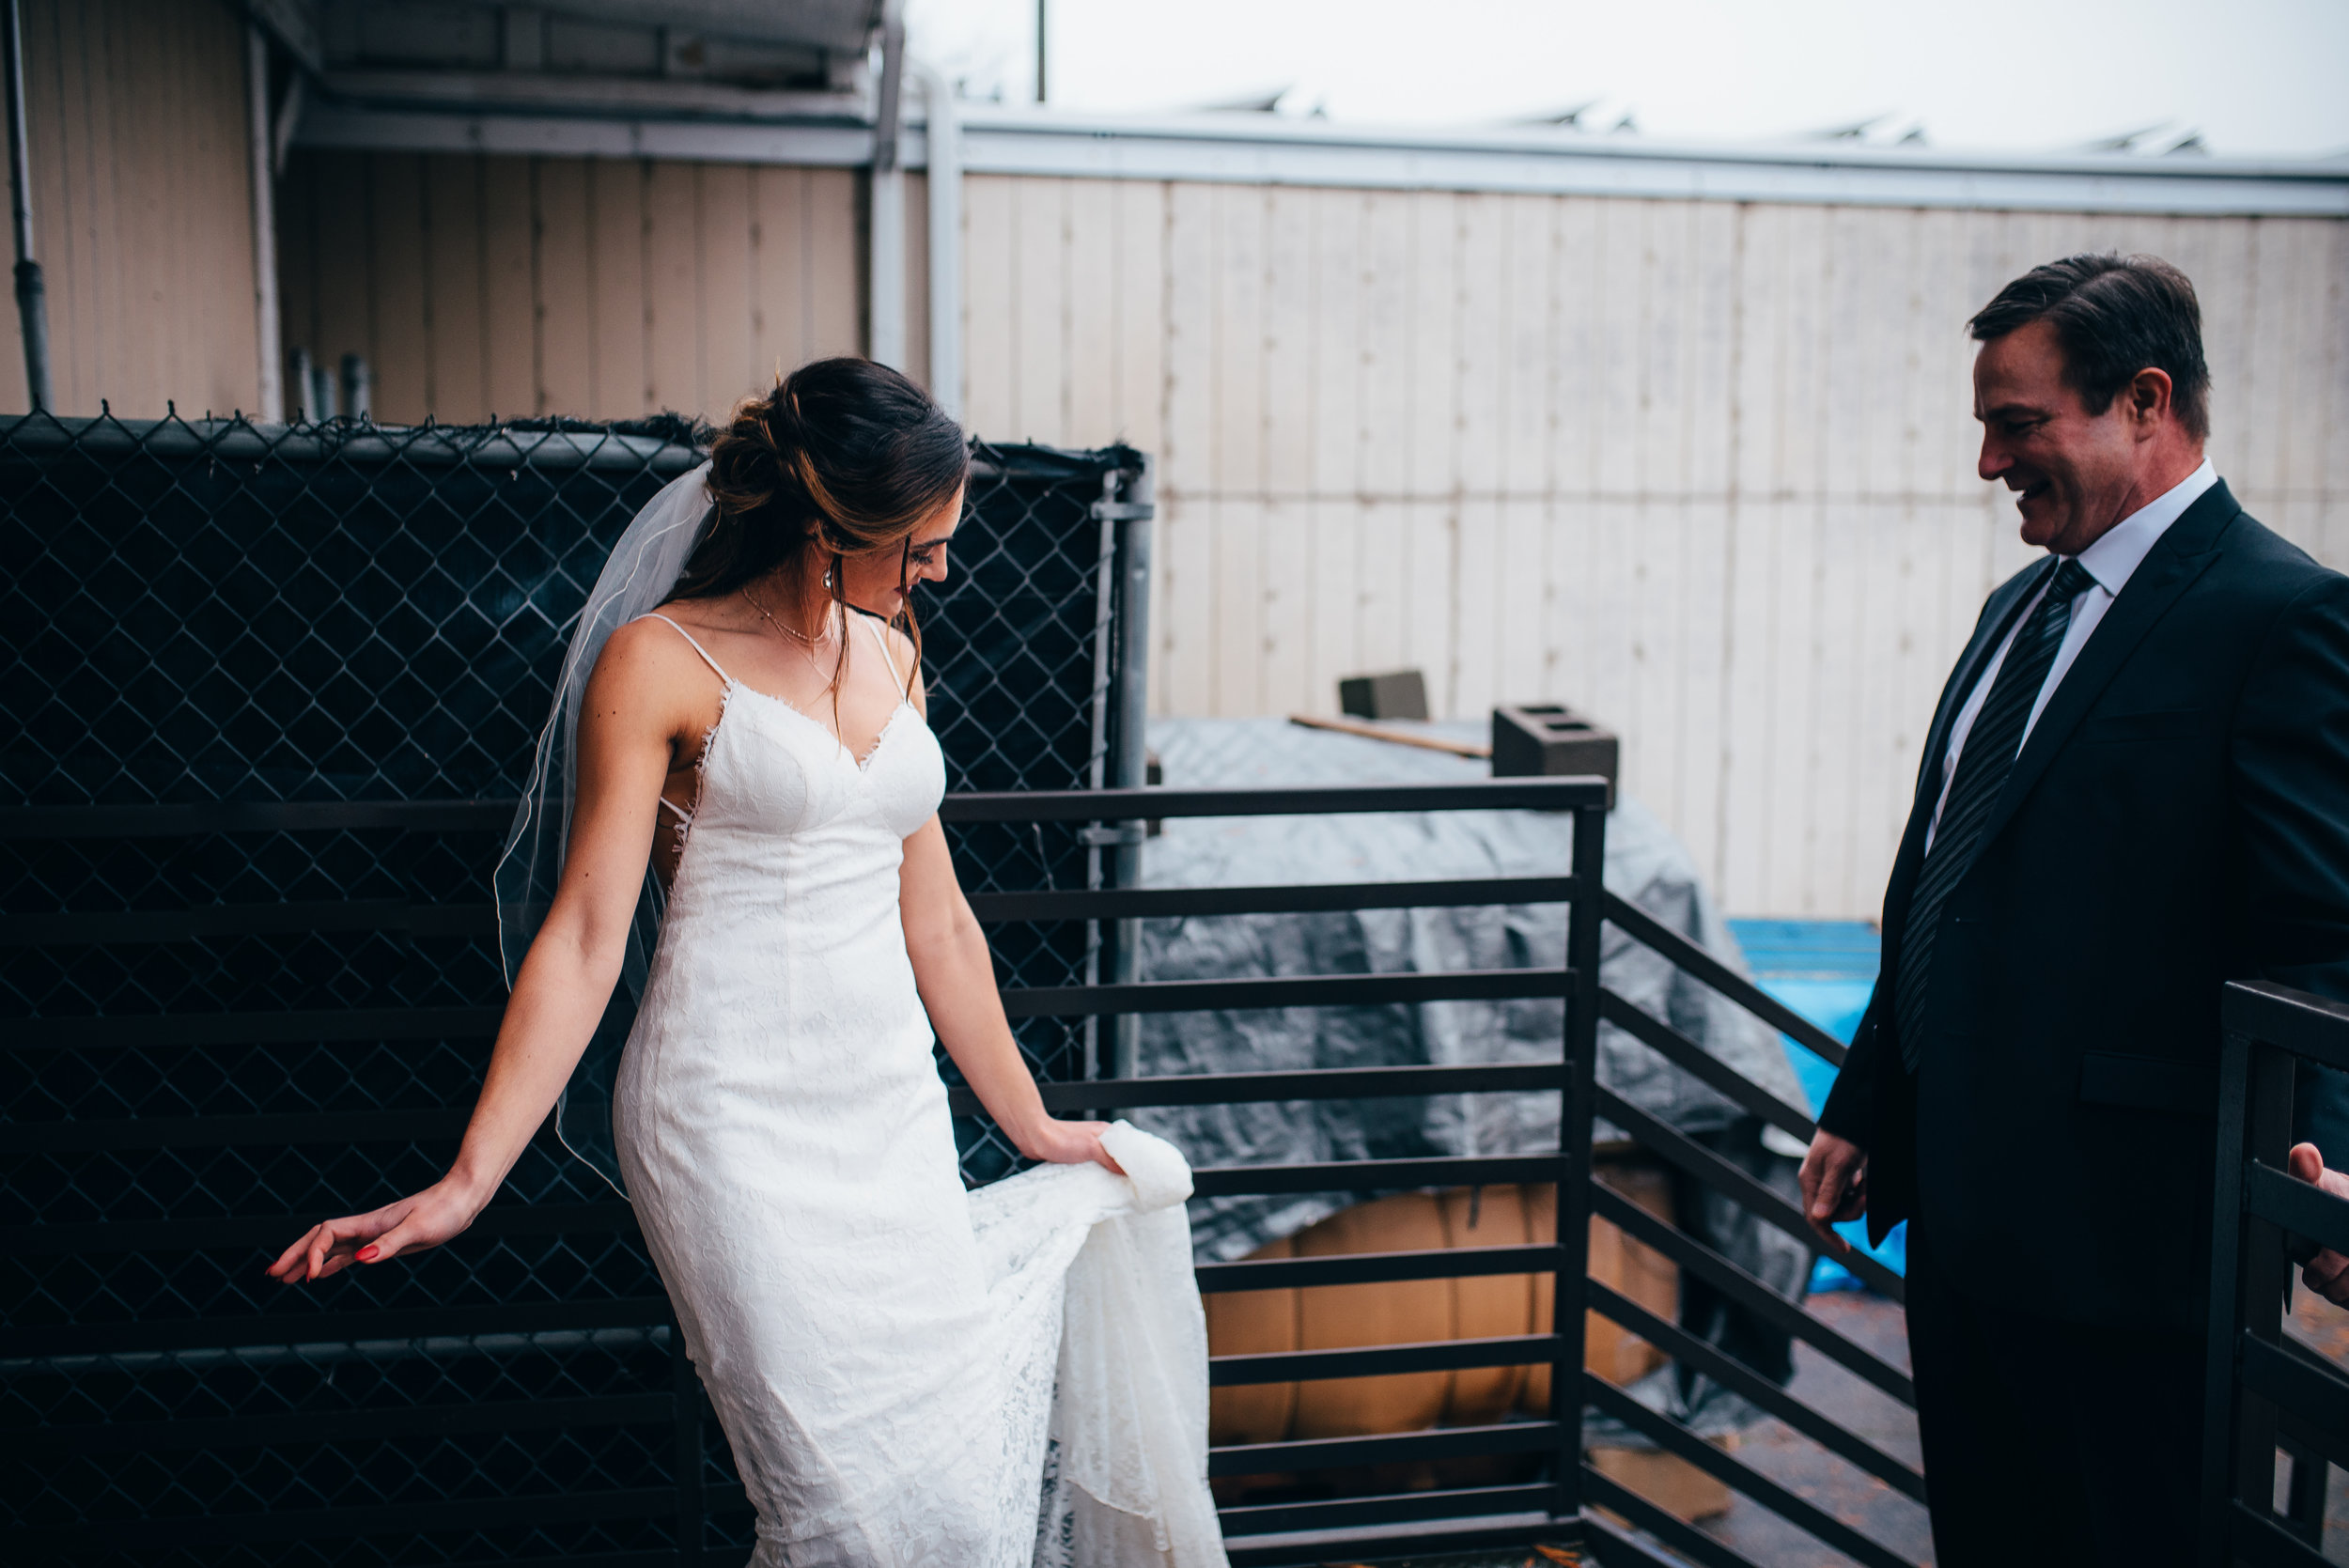 traine wedding - raleigh wedding photographer - north carolina wedding photographer